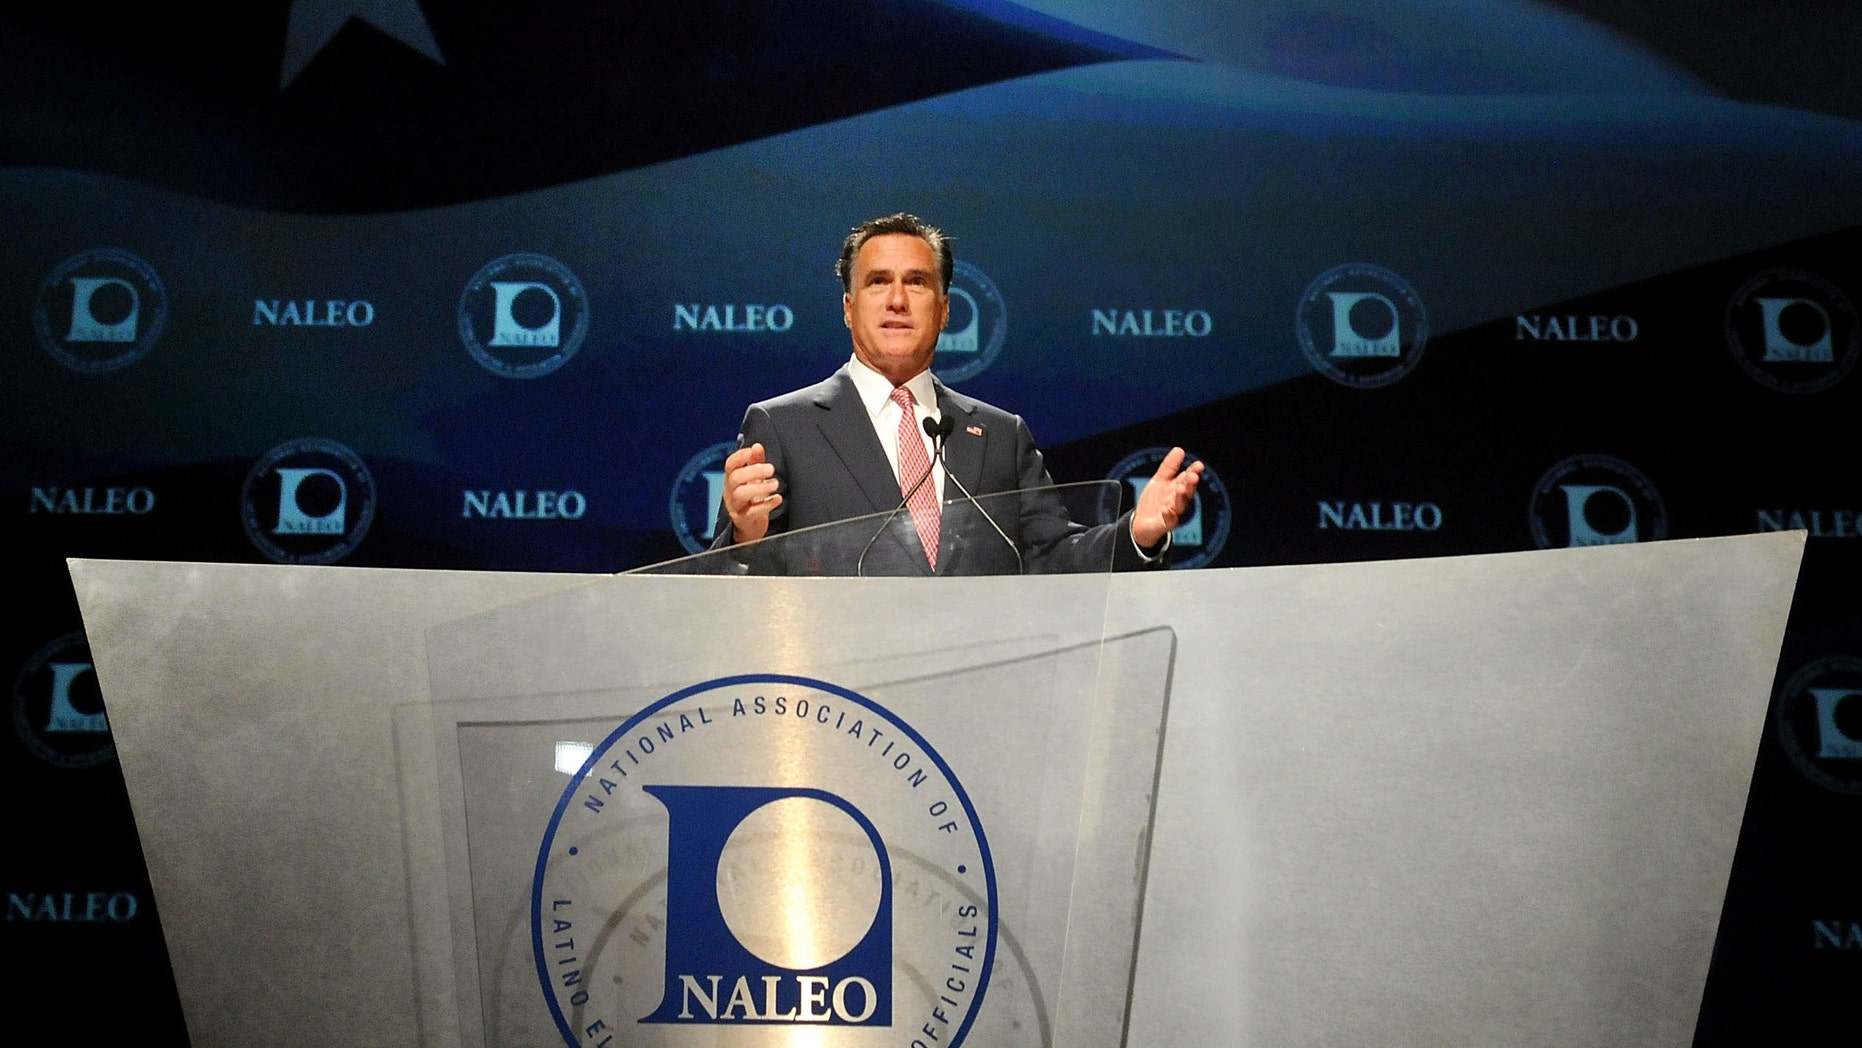 Republican Presidential candidate, former Massachusetts Governor Mitt Romney speaks at the National Association of Latino Elected and Appointed Officials (NALEO) 29th Annual Conference on June 21, 2012 in Lake Buena Vista, Florida. (Photo by Gerardo Mora/Getty Images)